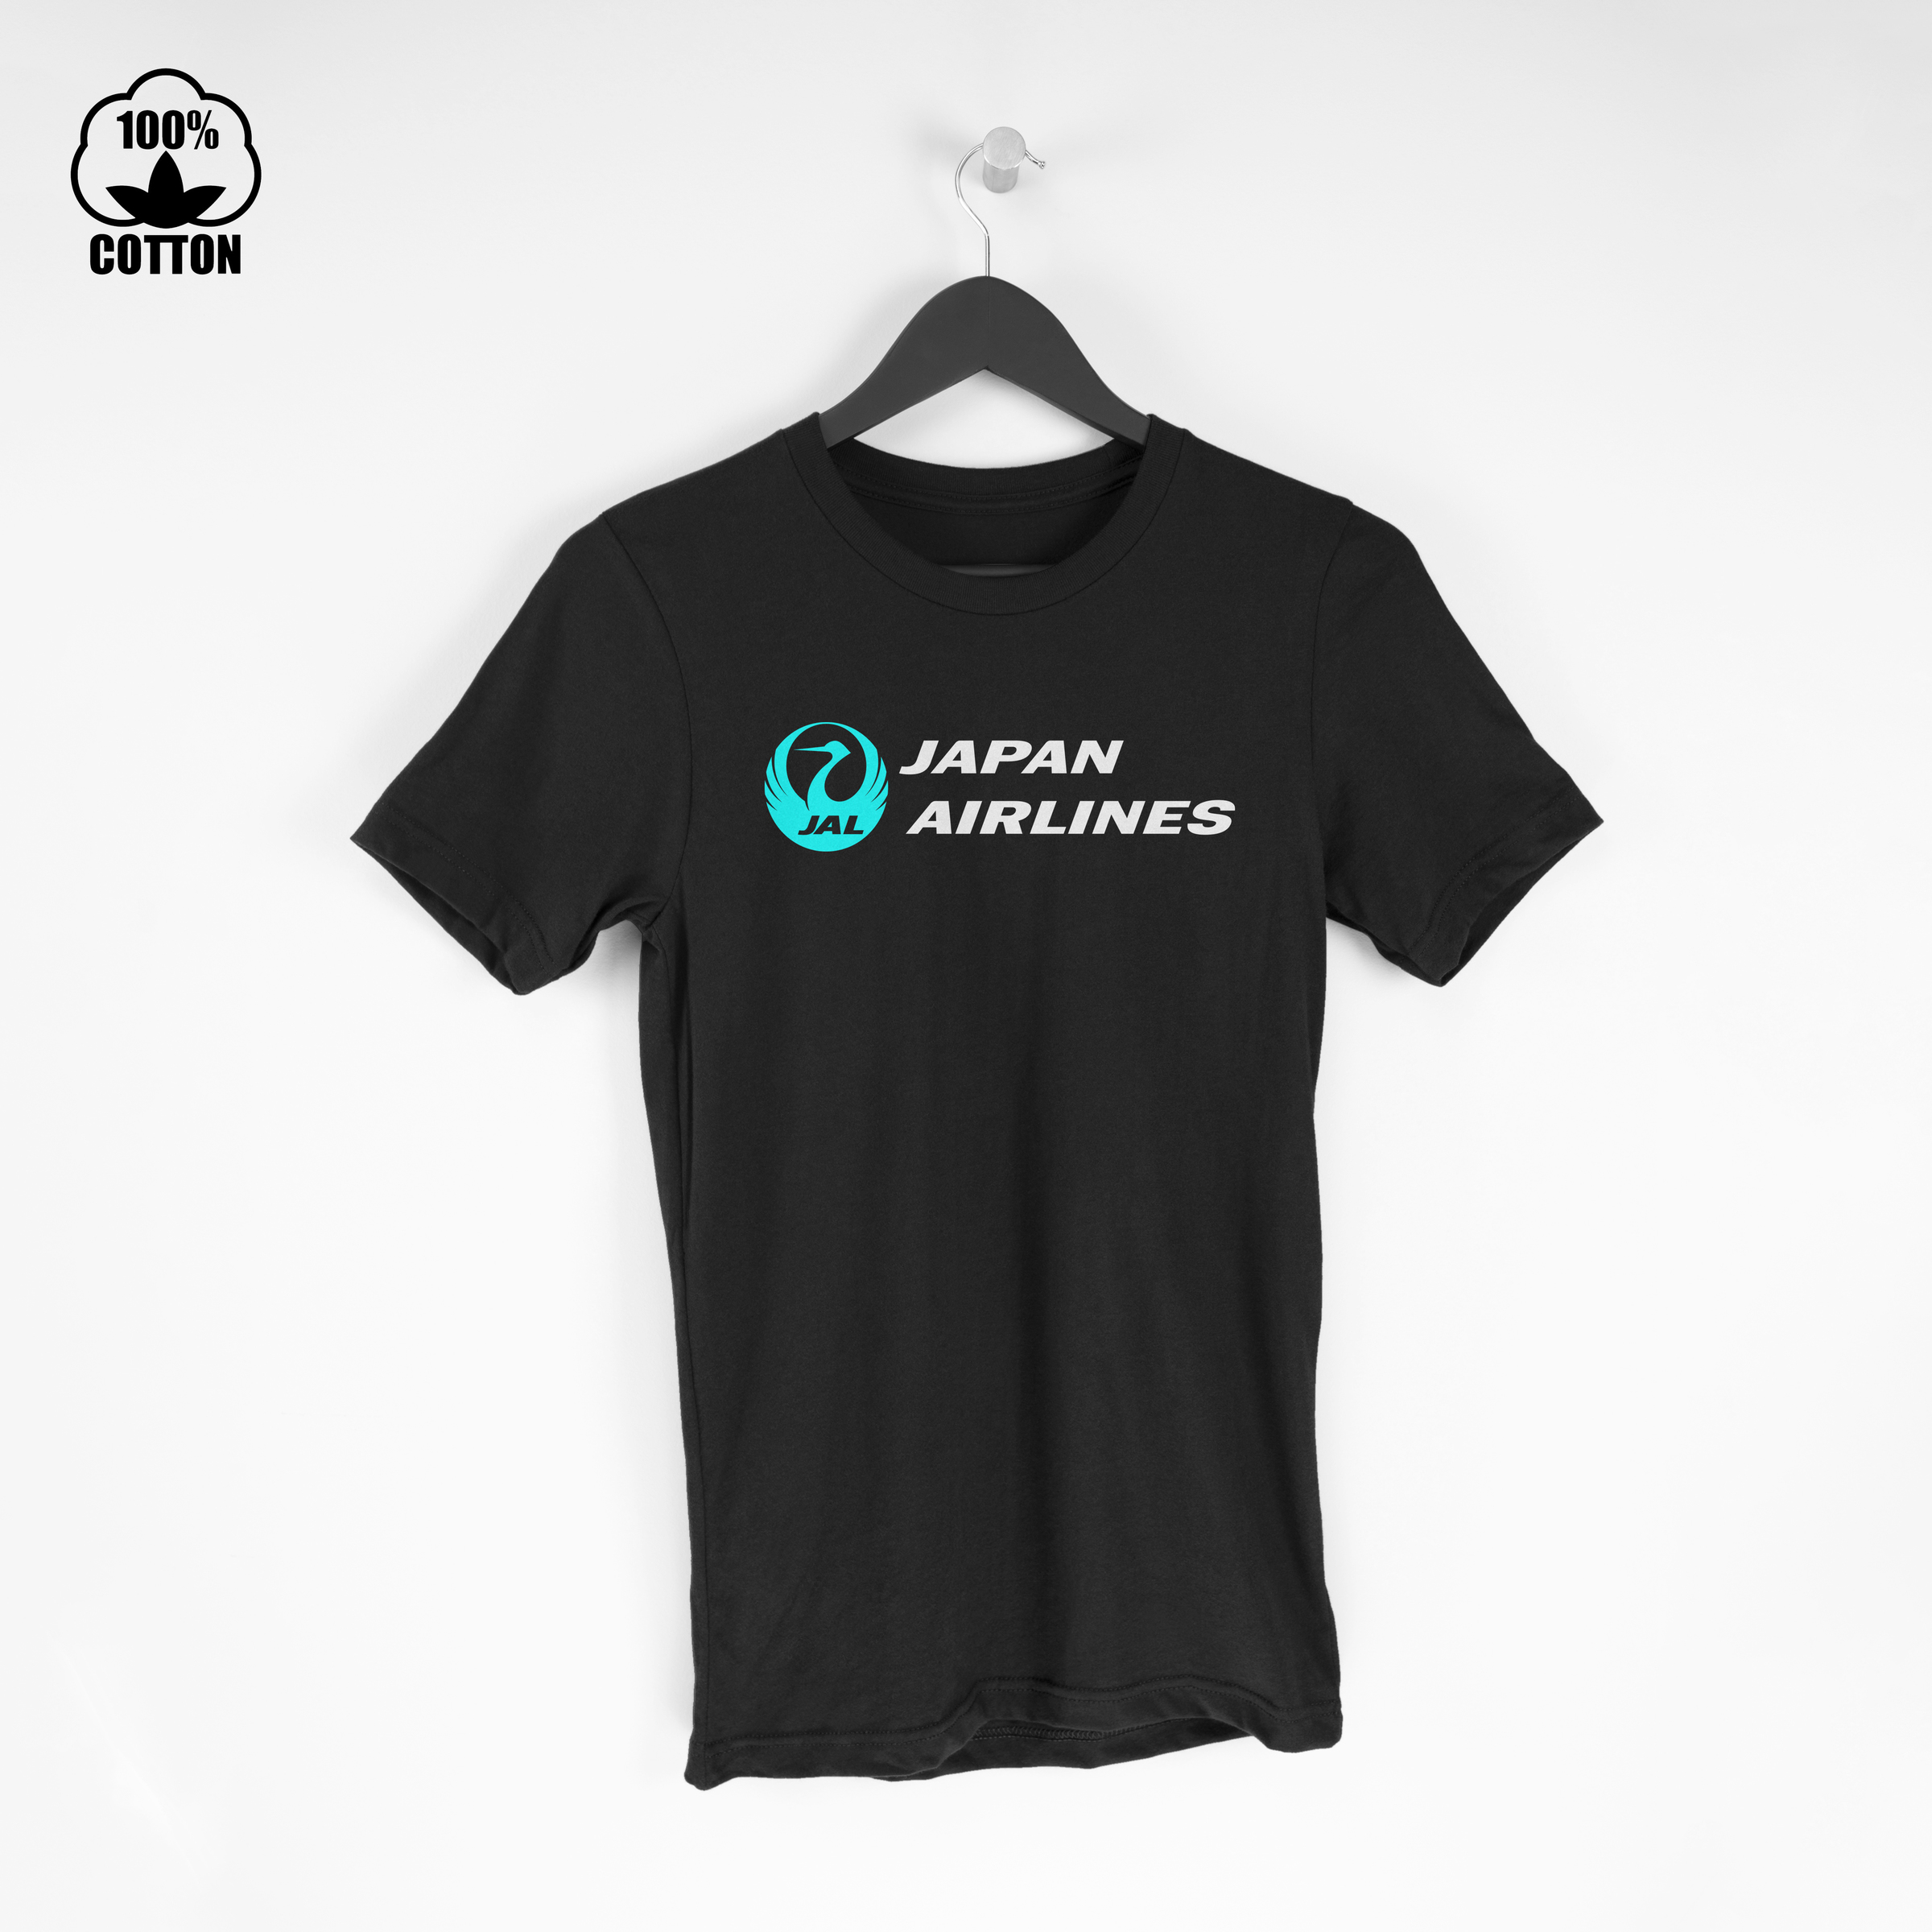 JAL Japan Airlines Shirt Retro Vintage Logo  Tee Size S-XXL USA E Black.jpg